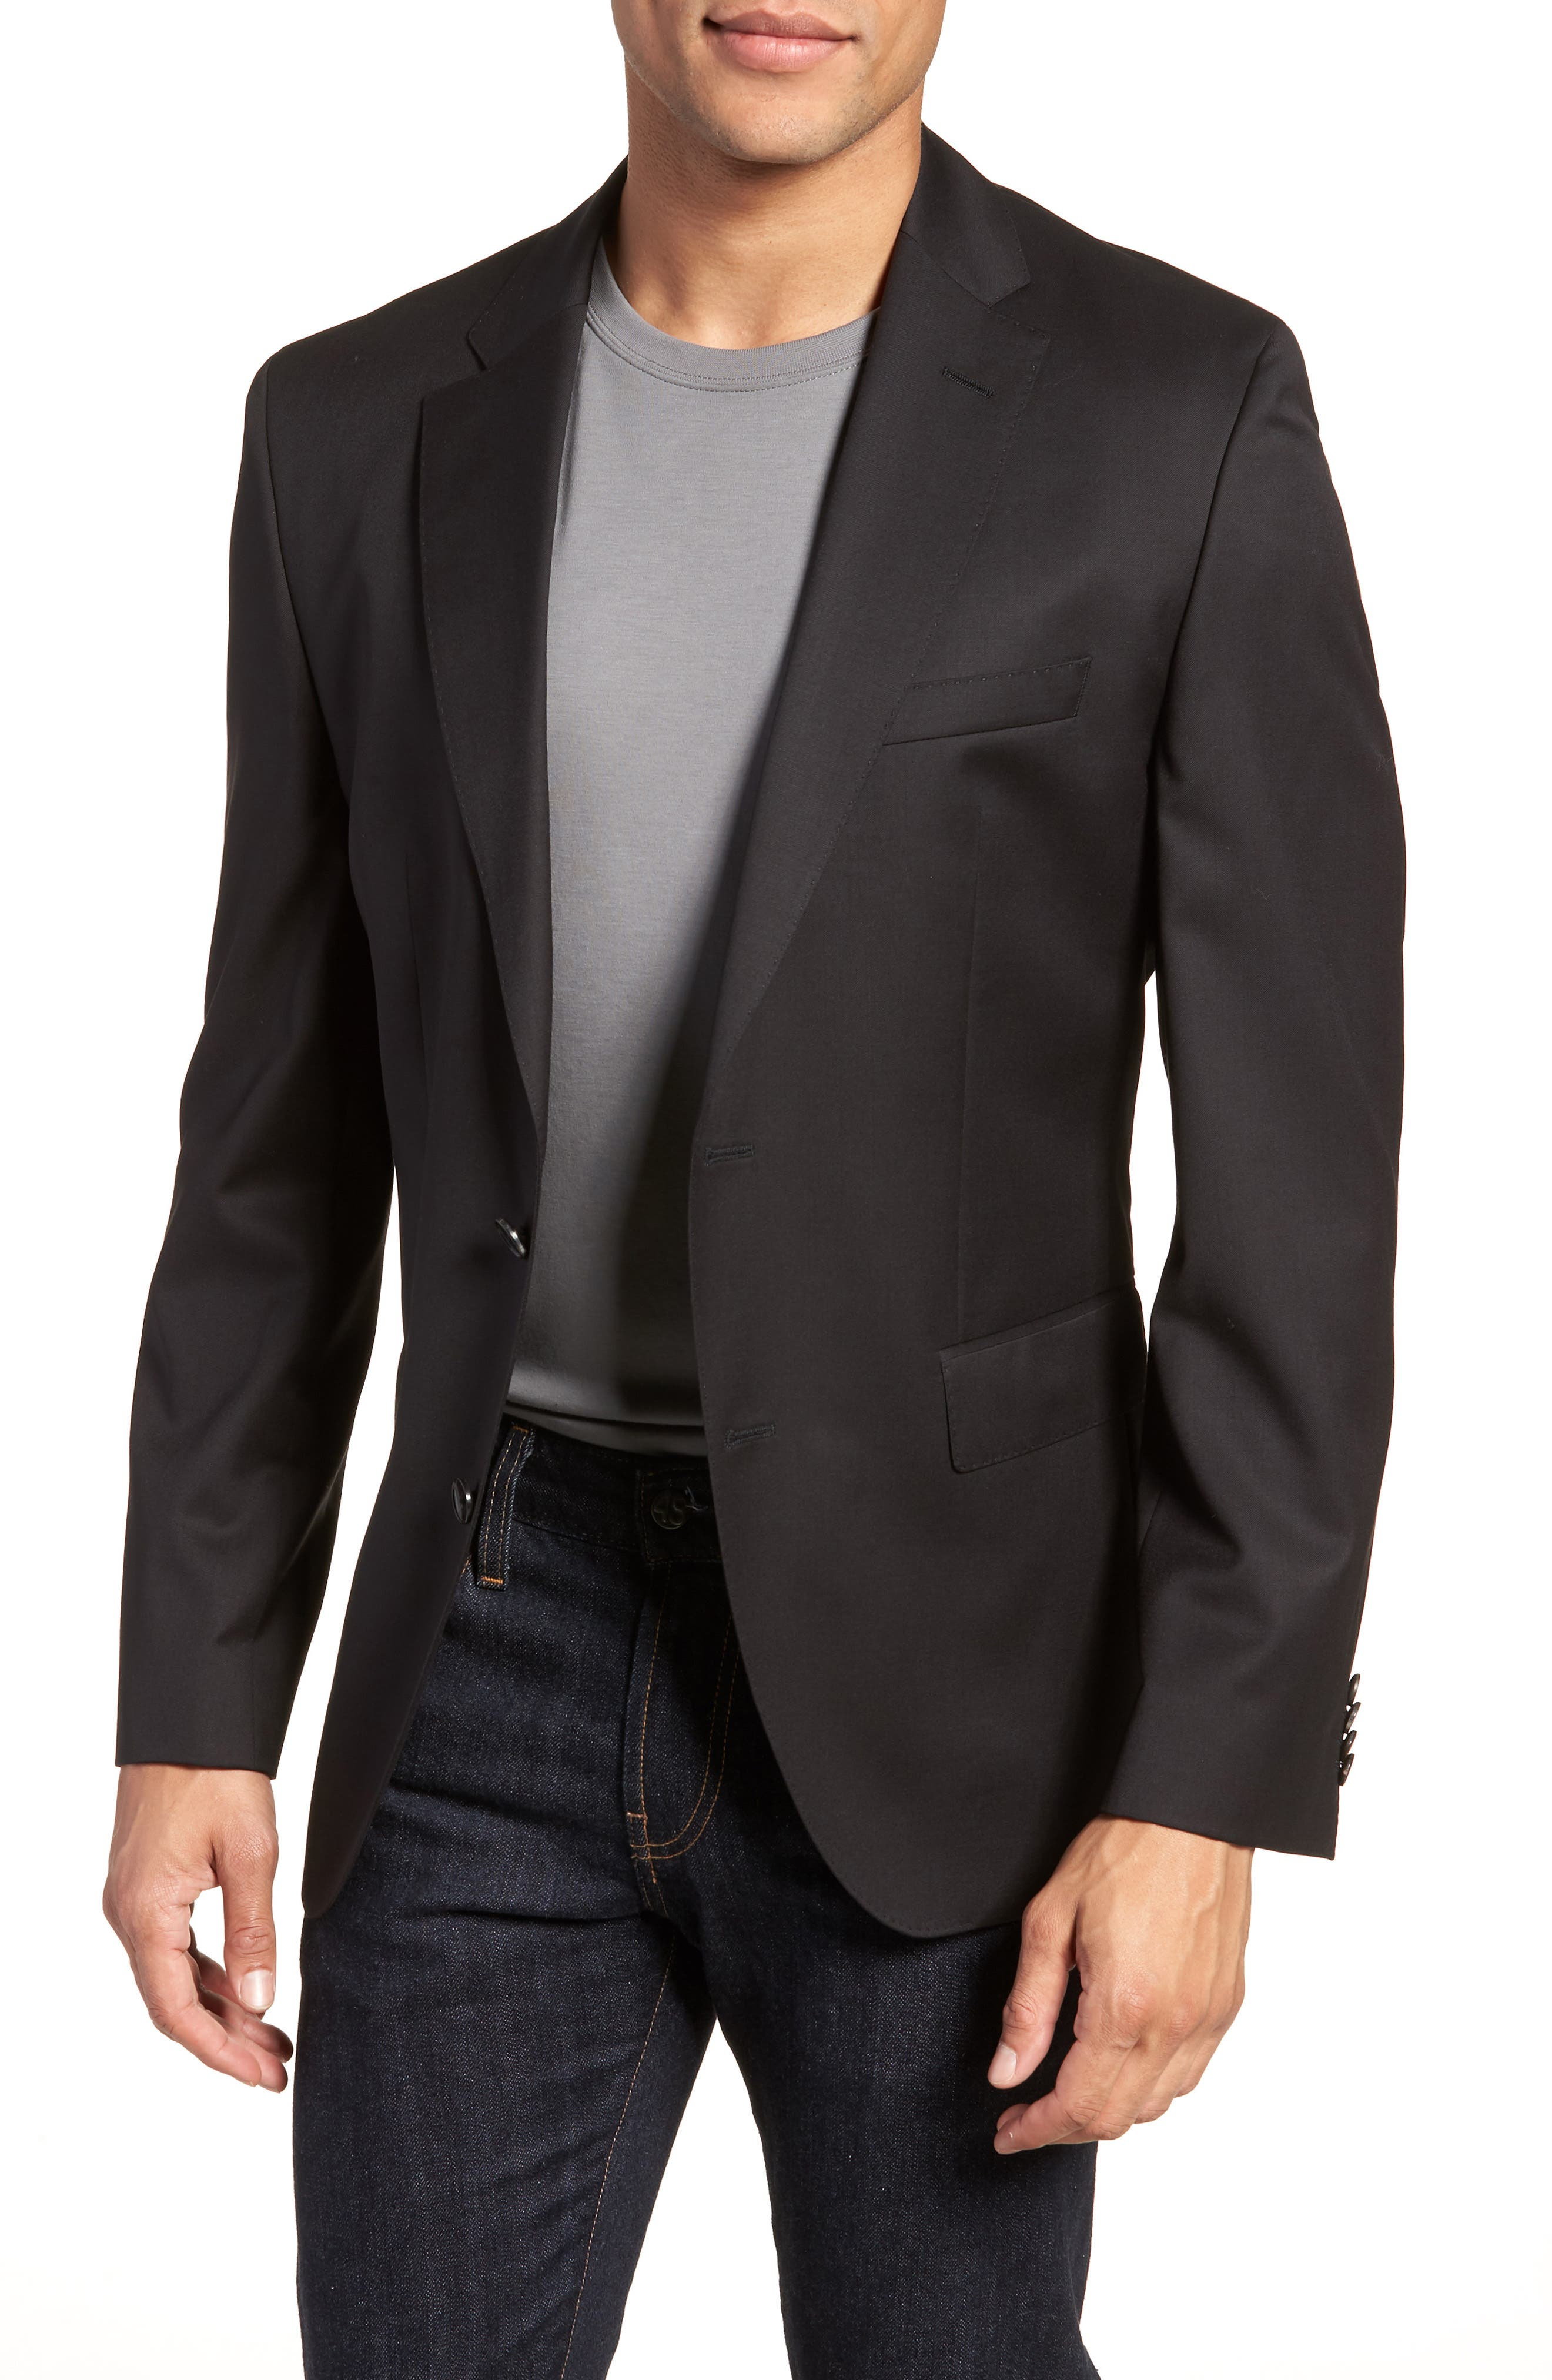 Johnstons CYL Trim Fit Solid Wool Sport Coat,                             Main thumbnail 1, color,                             Black